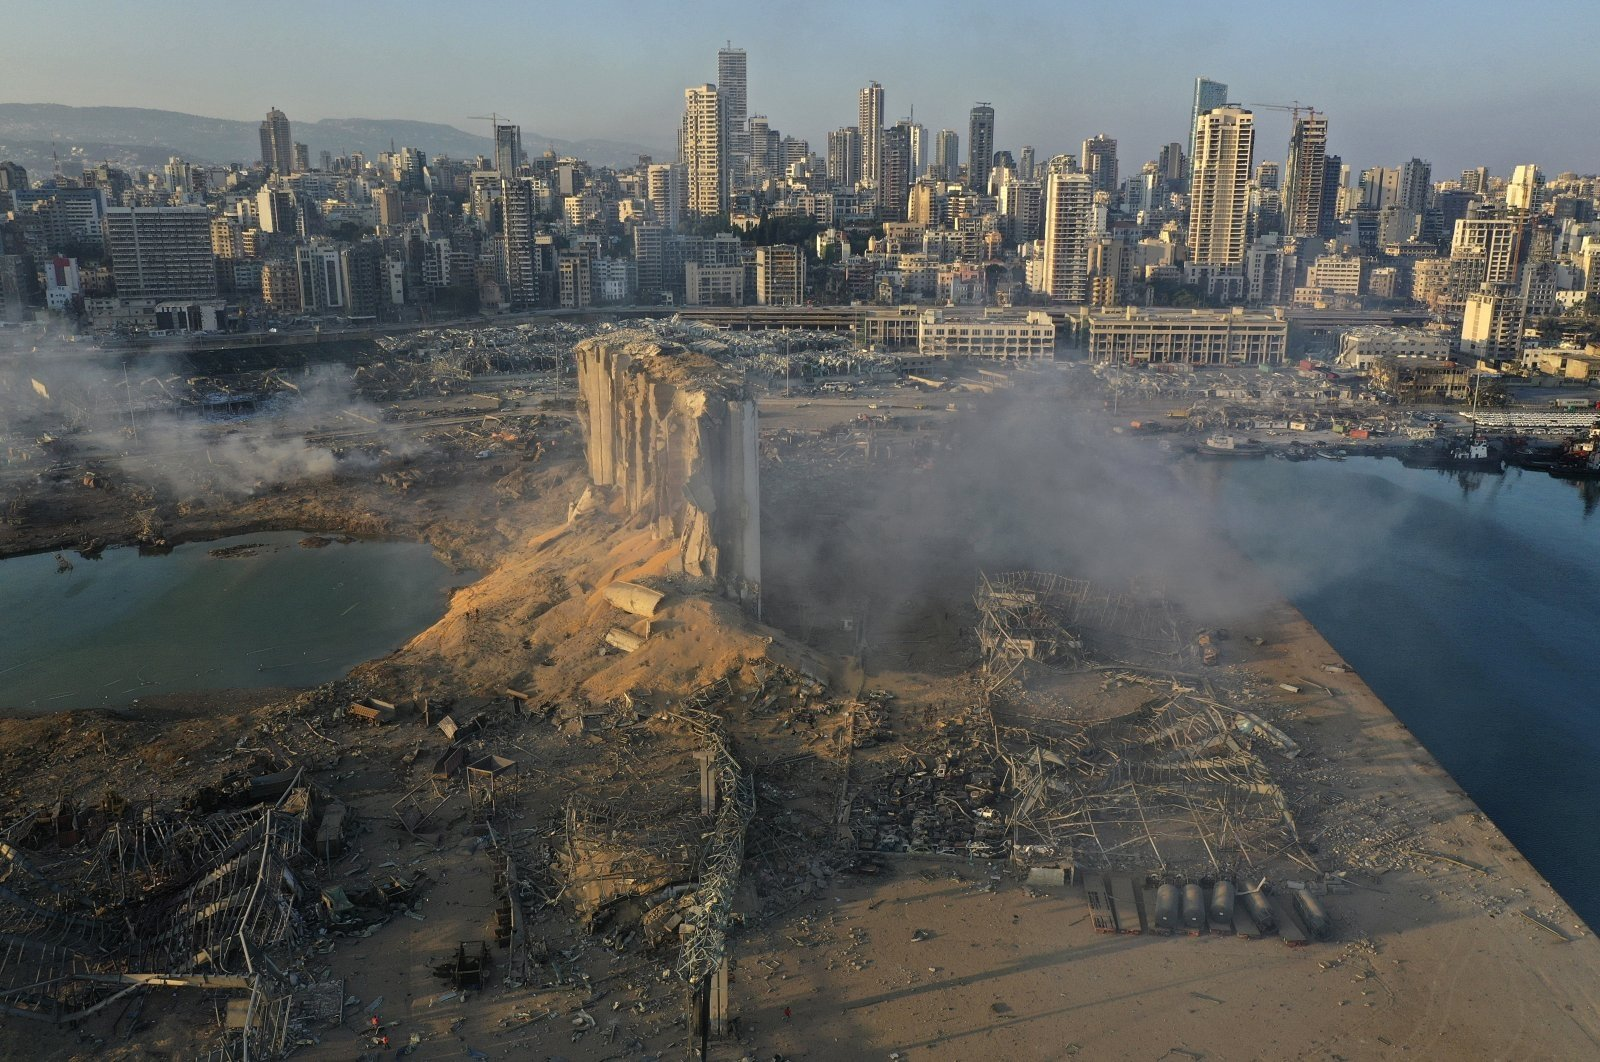 A drone photo shows the destruction after last year's explosion at the Port of Beirut, Lebanon, Aug. 5, 2020. (AP Photo)